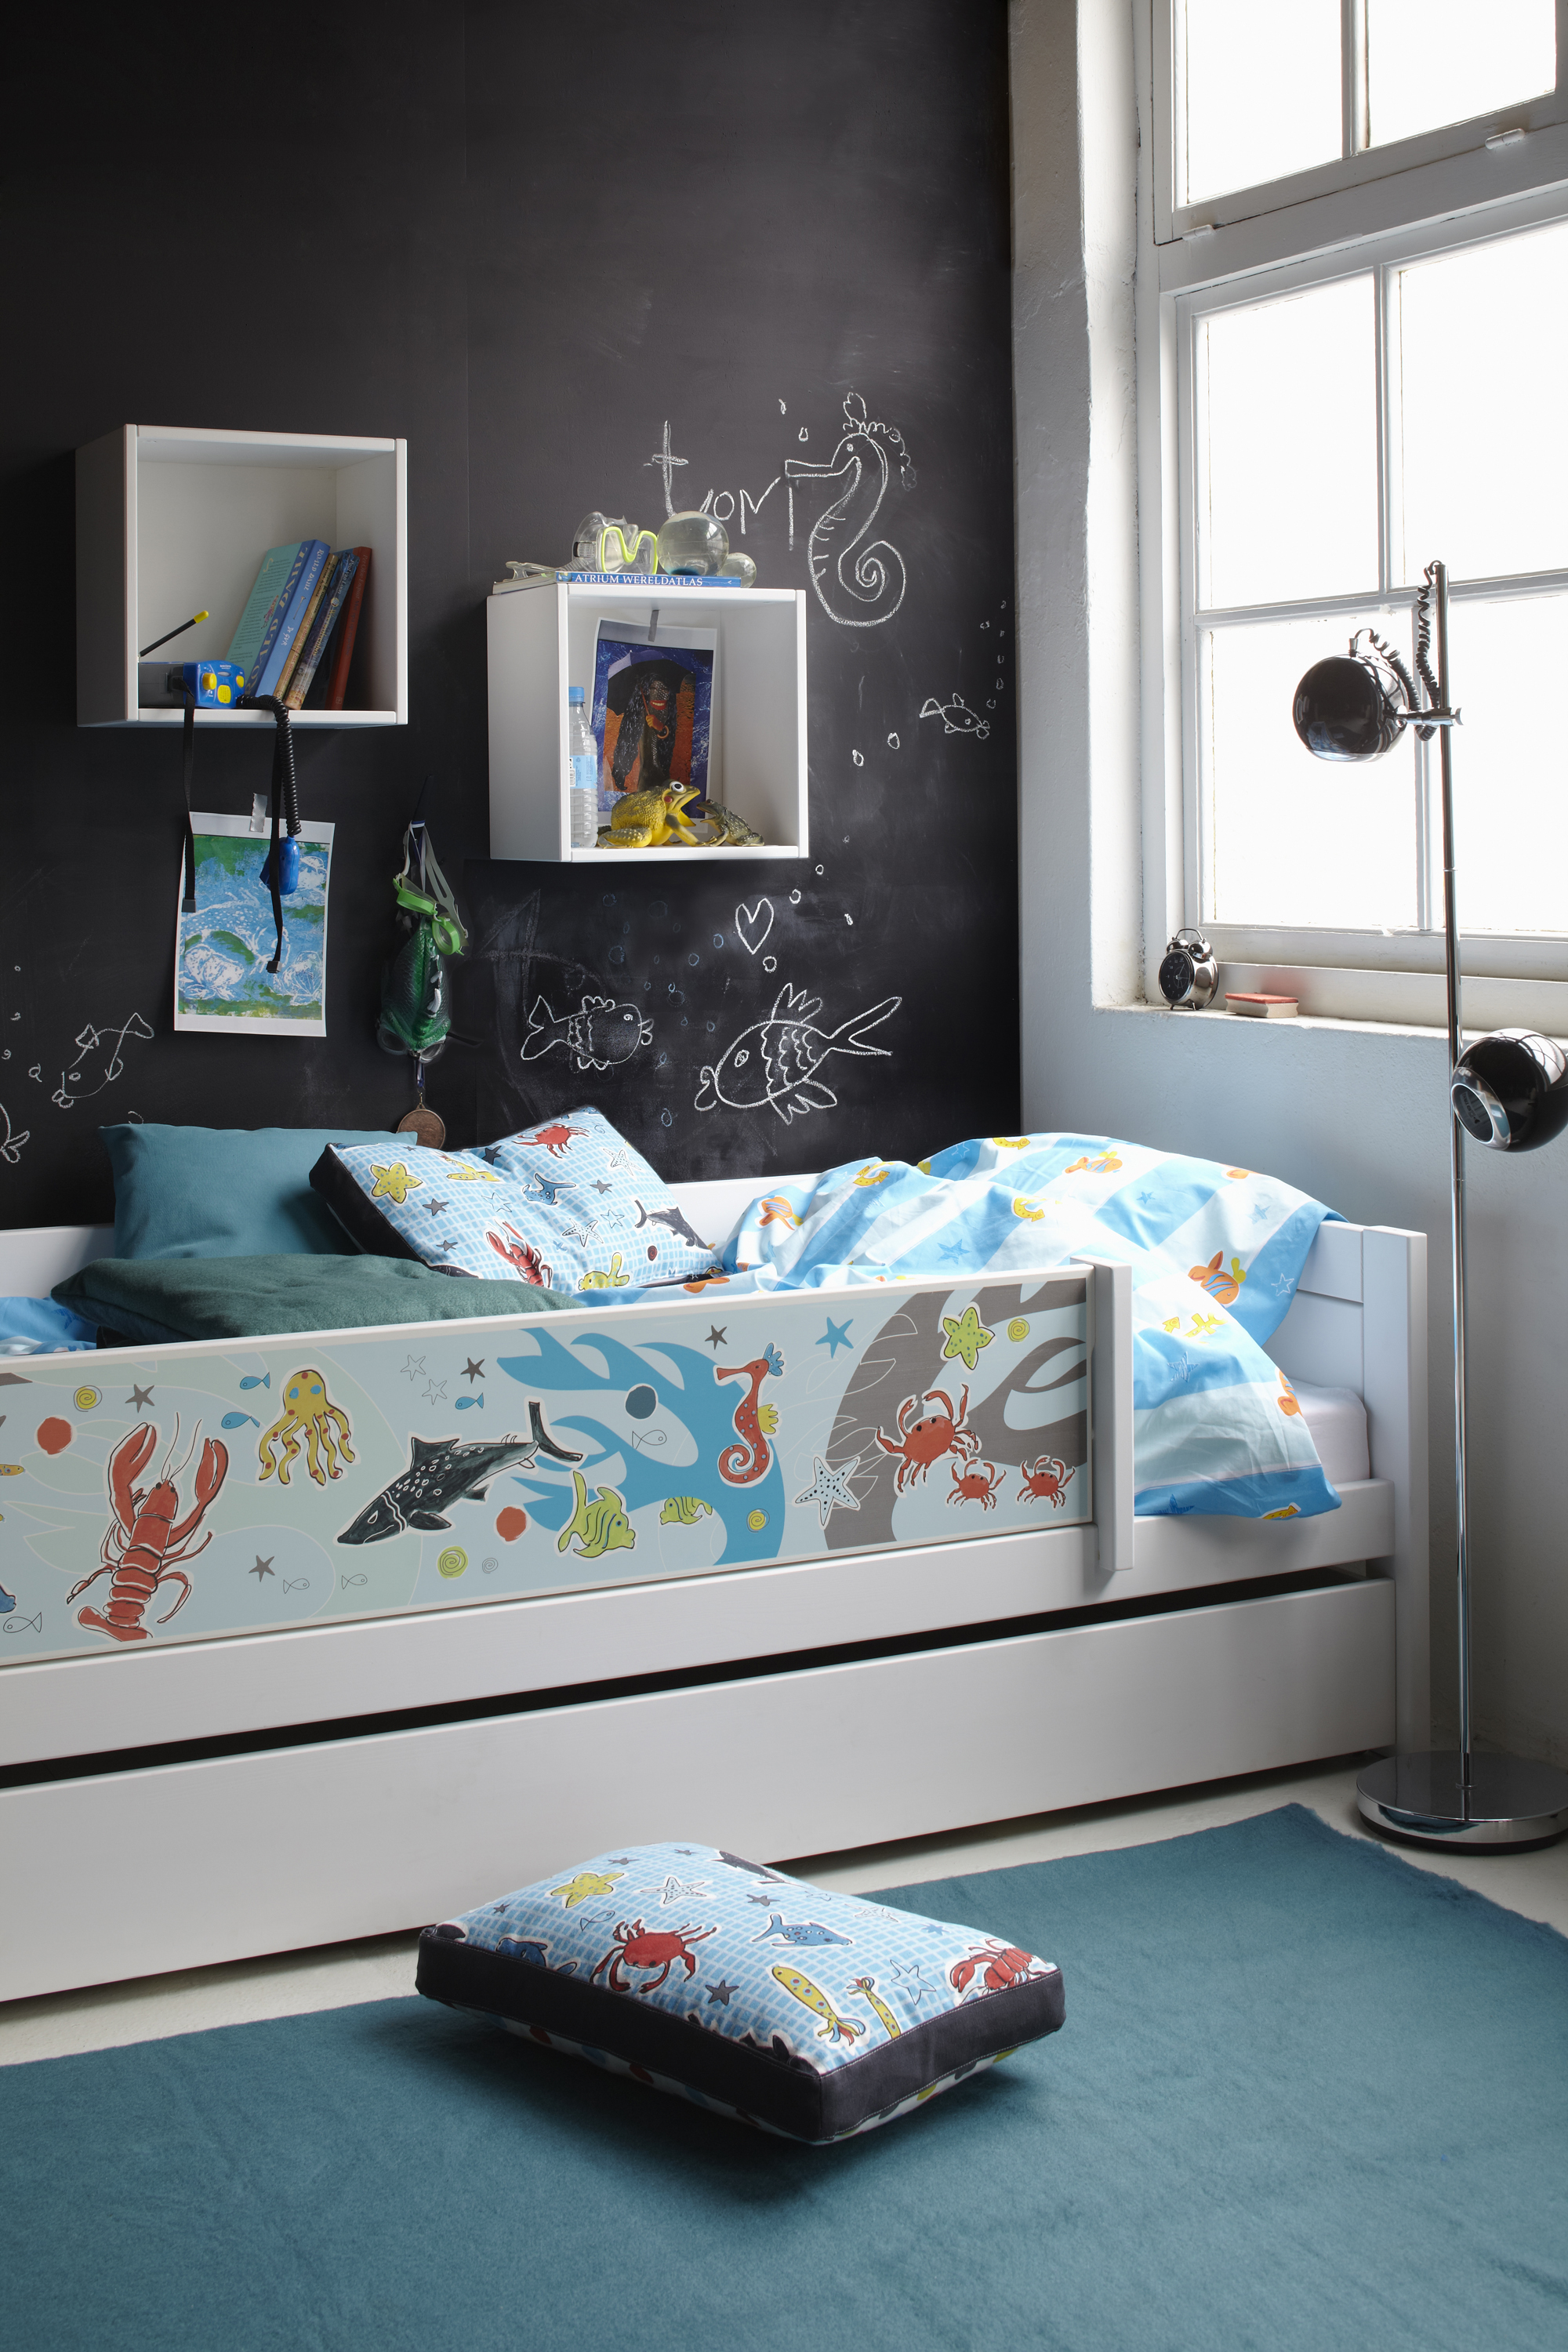 worauf es im kinderzimmer ankommt. Black Bedroom Furniture Sets. Home Design Ideas